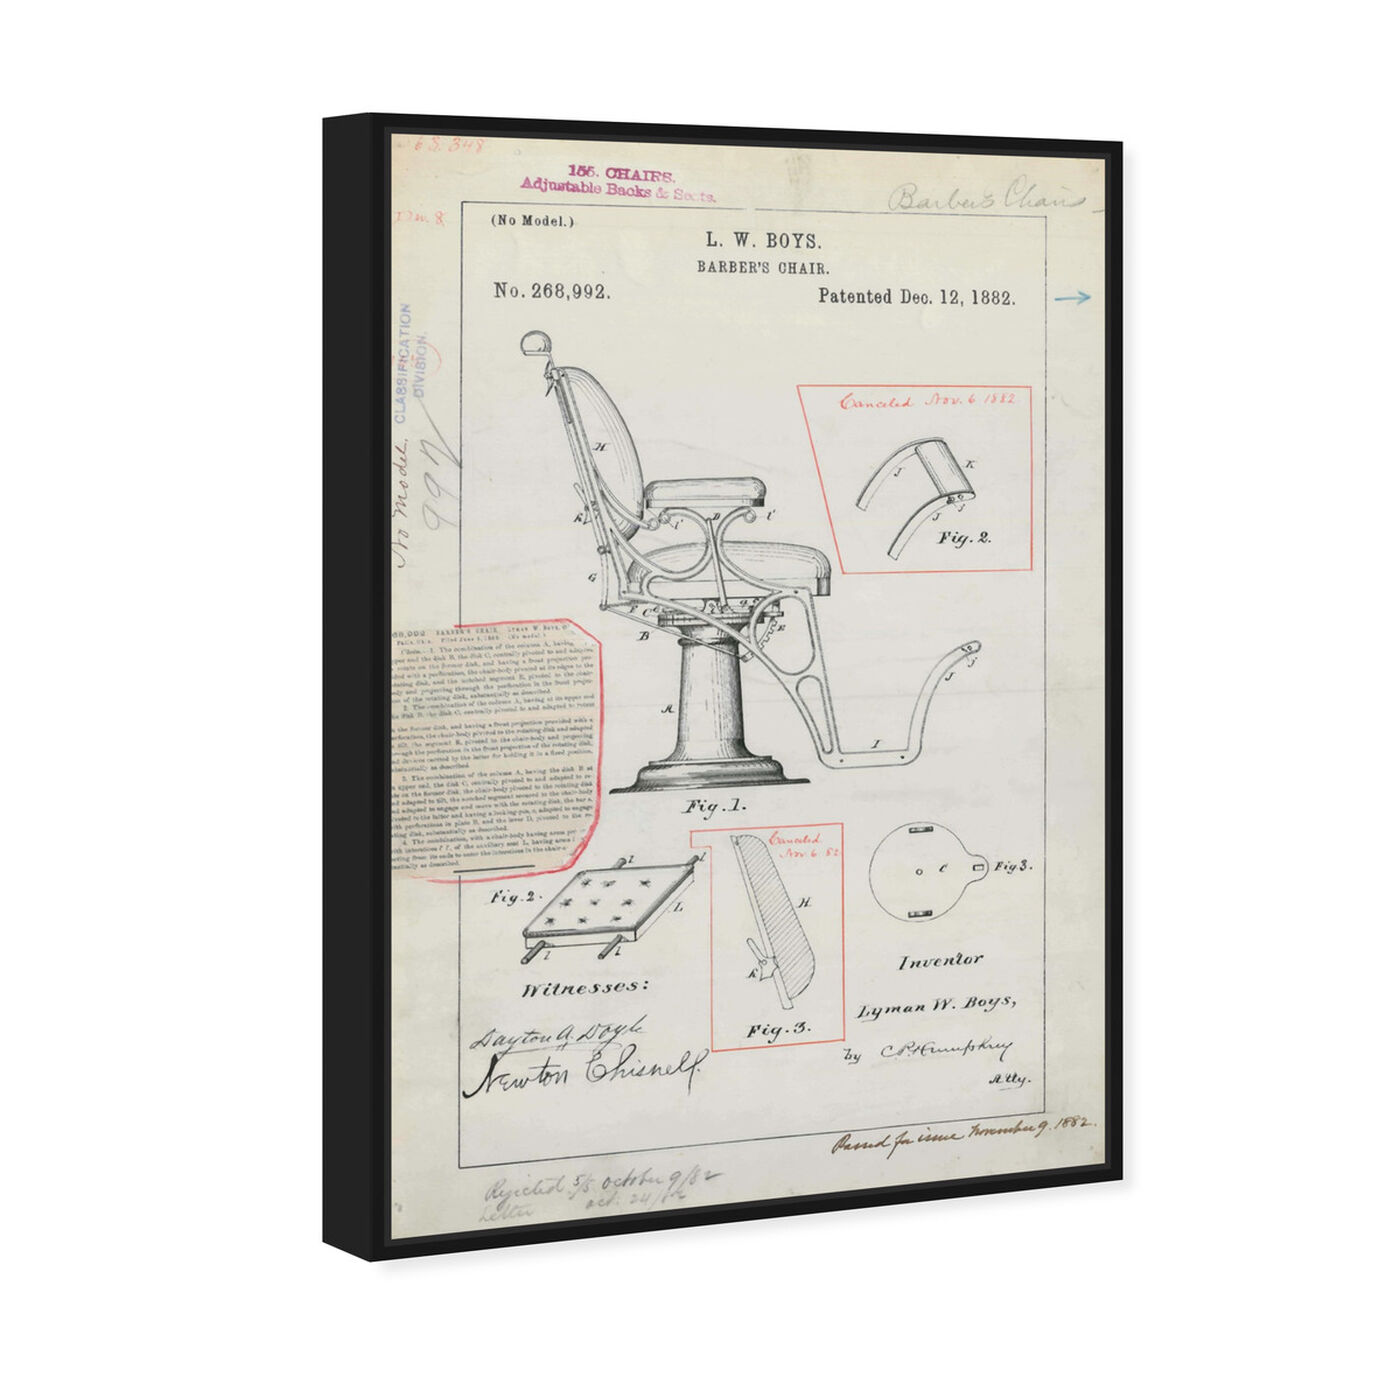 Angled view of Barber Chair Patent 1882 featuring bath and laundry and barber art.